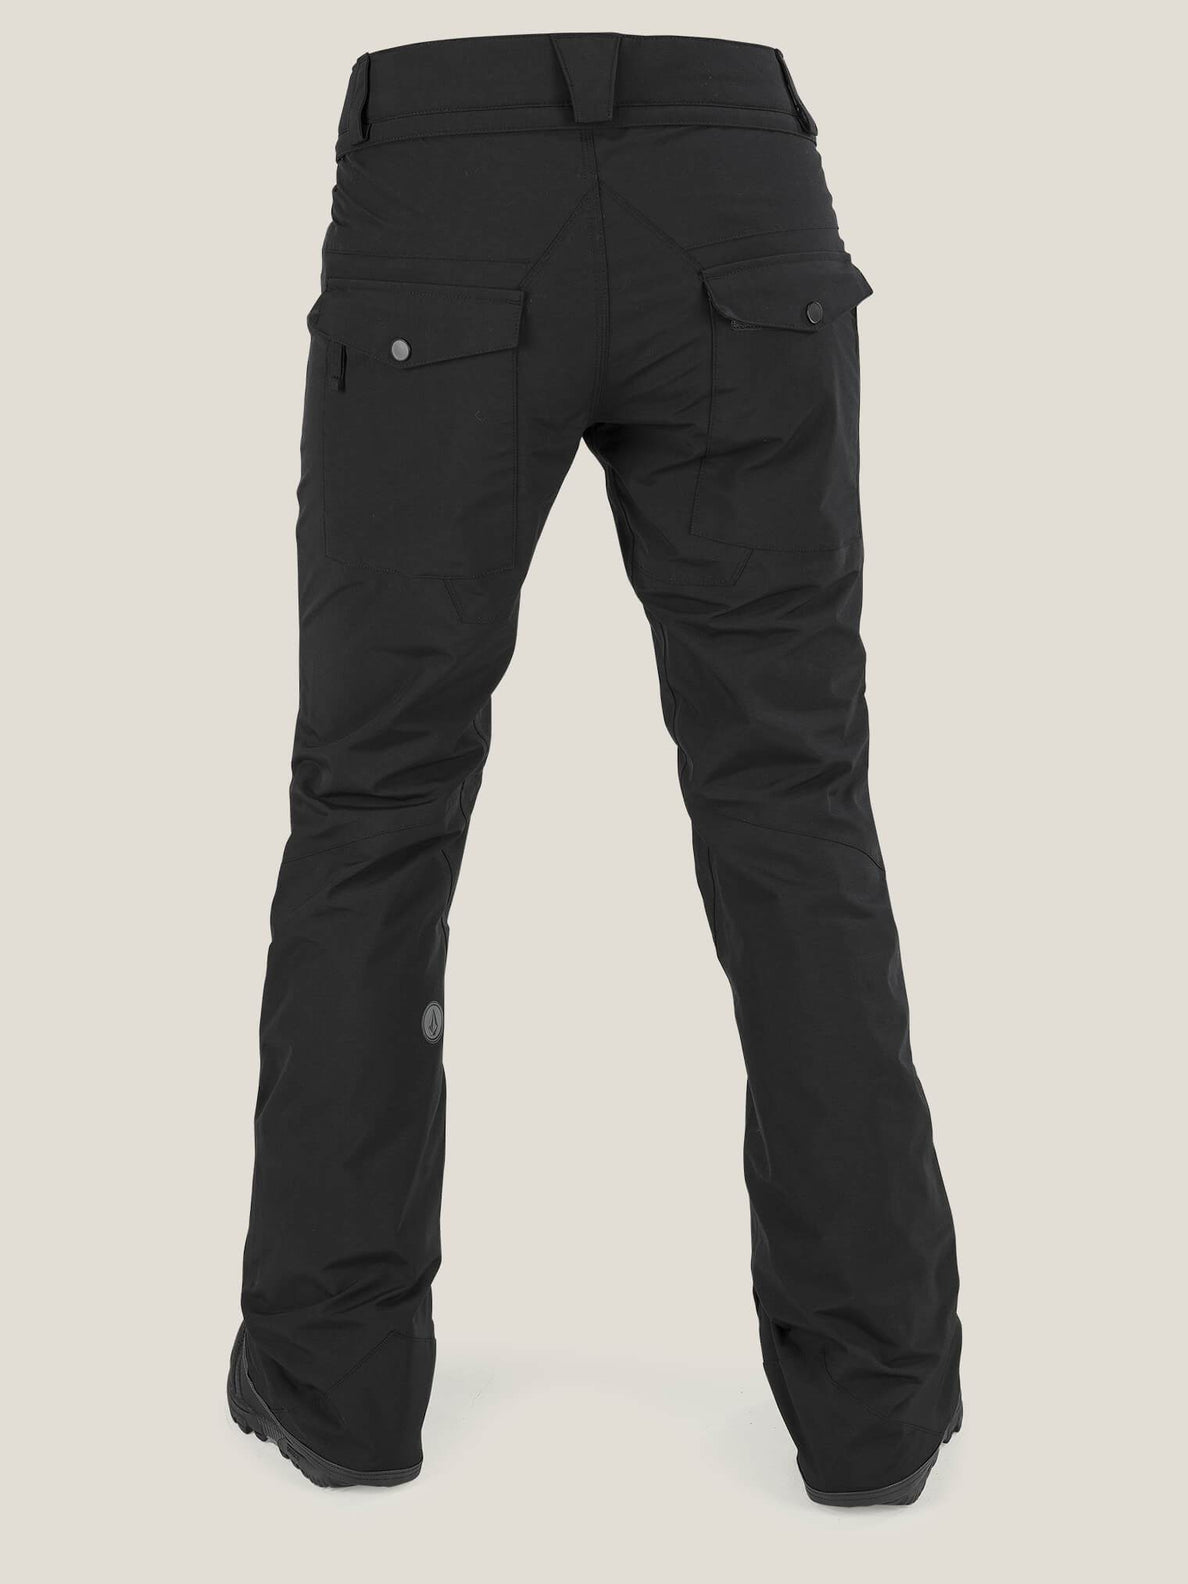 Knox Gore-tex® Pant In Black, Back View